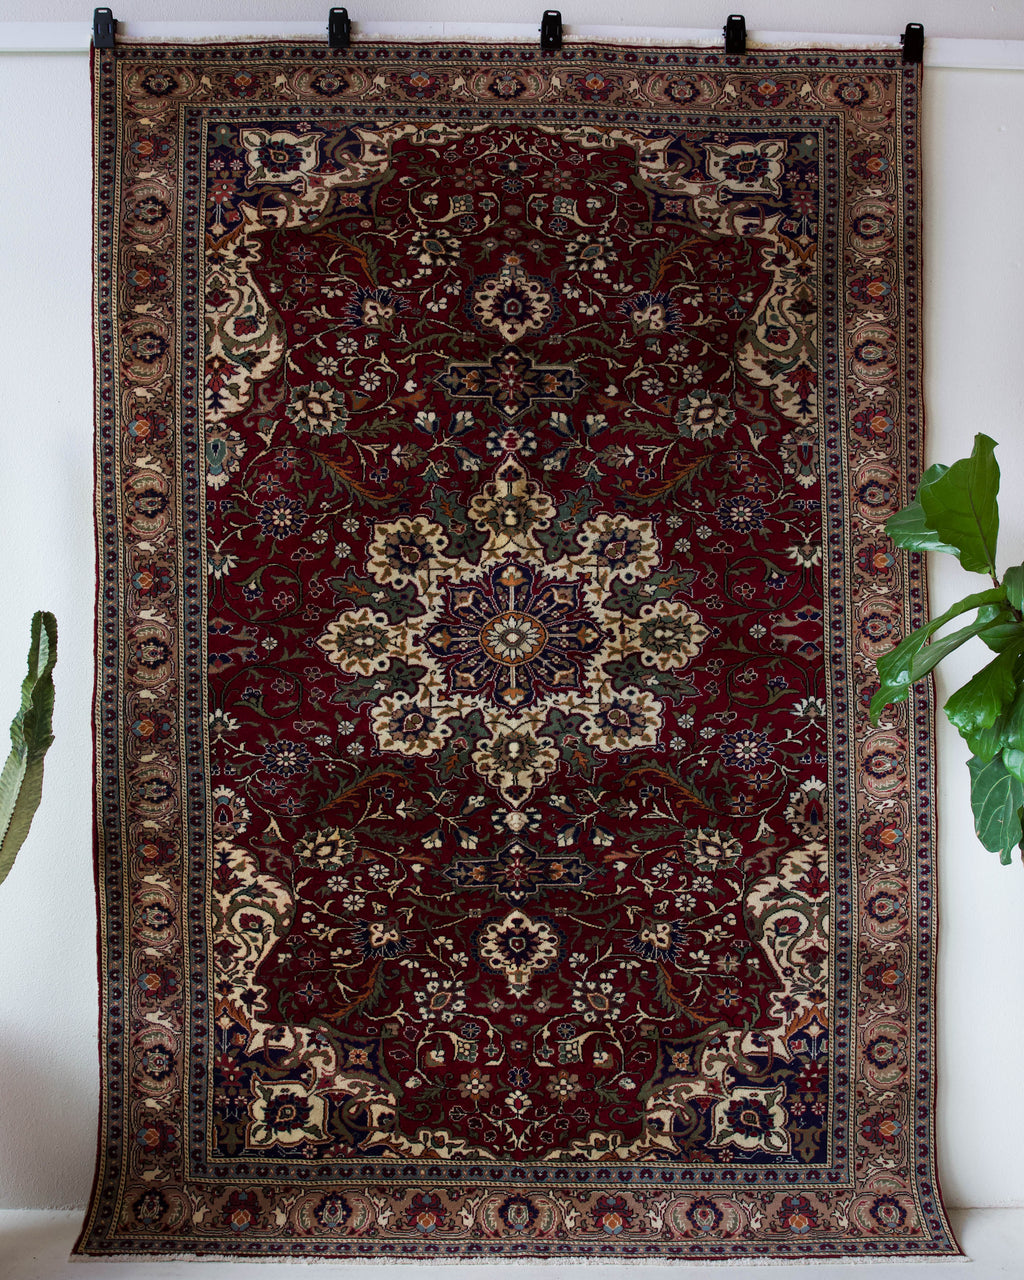 Vintage Turkish rug in a living room setting, pile rug, Turkish rug, vintage rug, portland, rug shop, bright colors, wild shaman, soft rug, bold color, Portland, Oregon, rug store, rug shop, local shop, antique rug